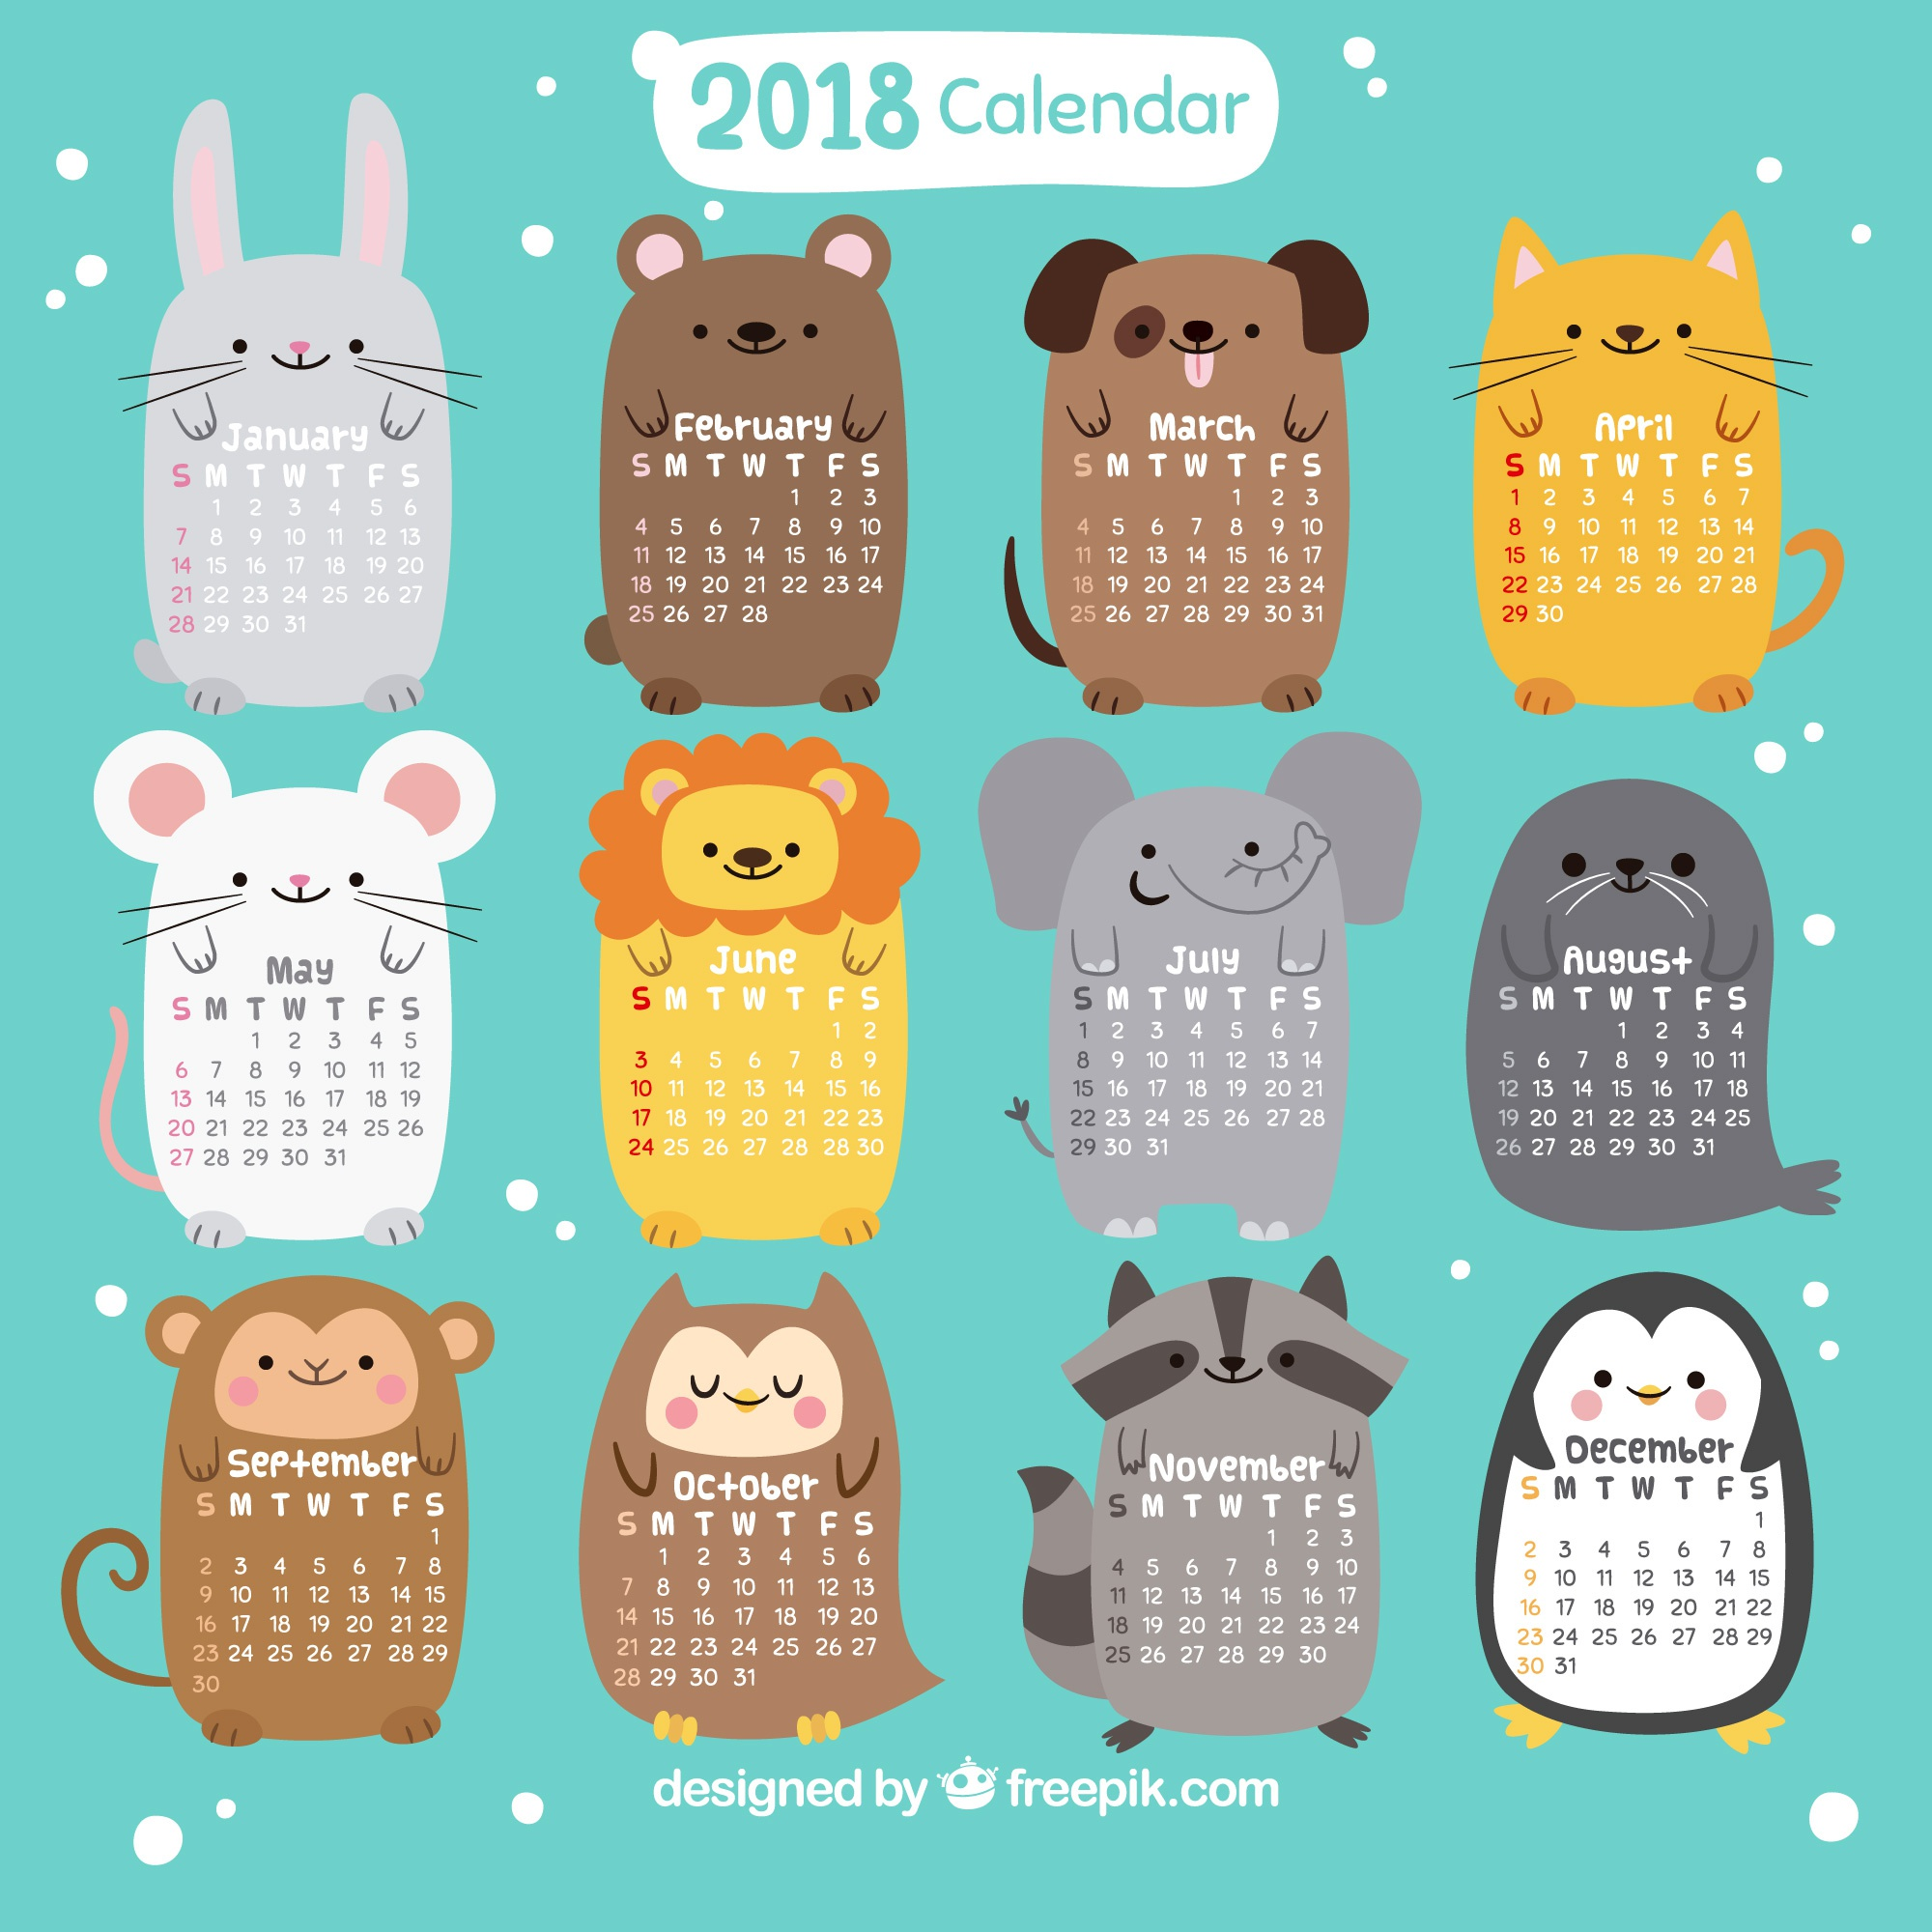 2018 calendar with nice animals